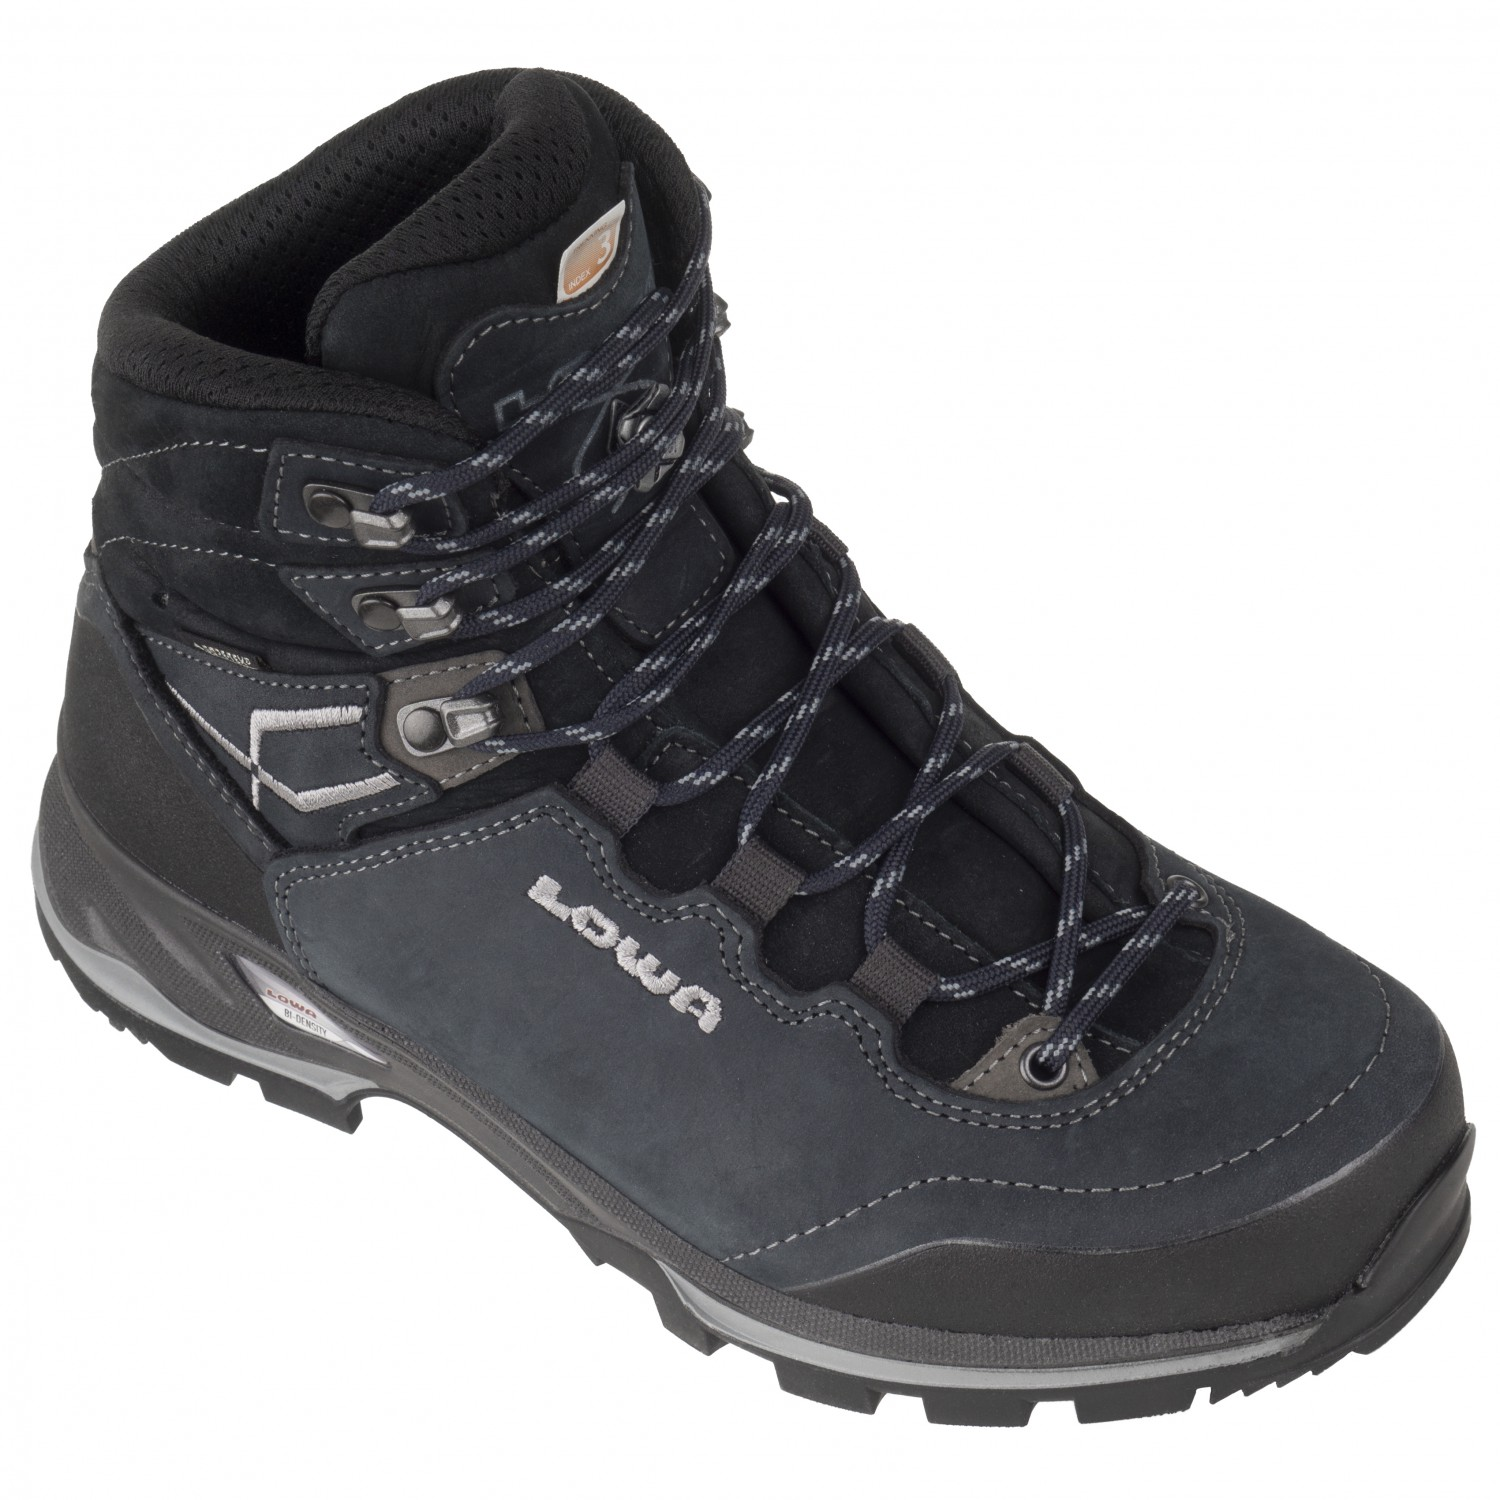 Lowa - Lady Light GTX - Wanderschuhe Blau